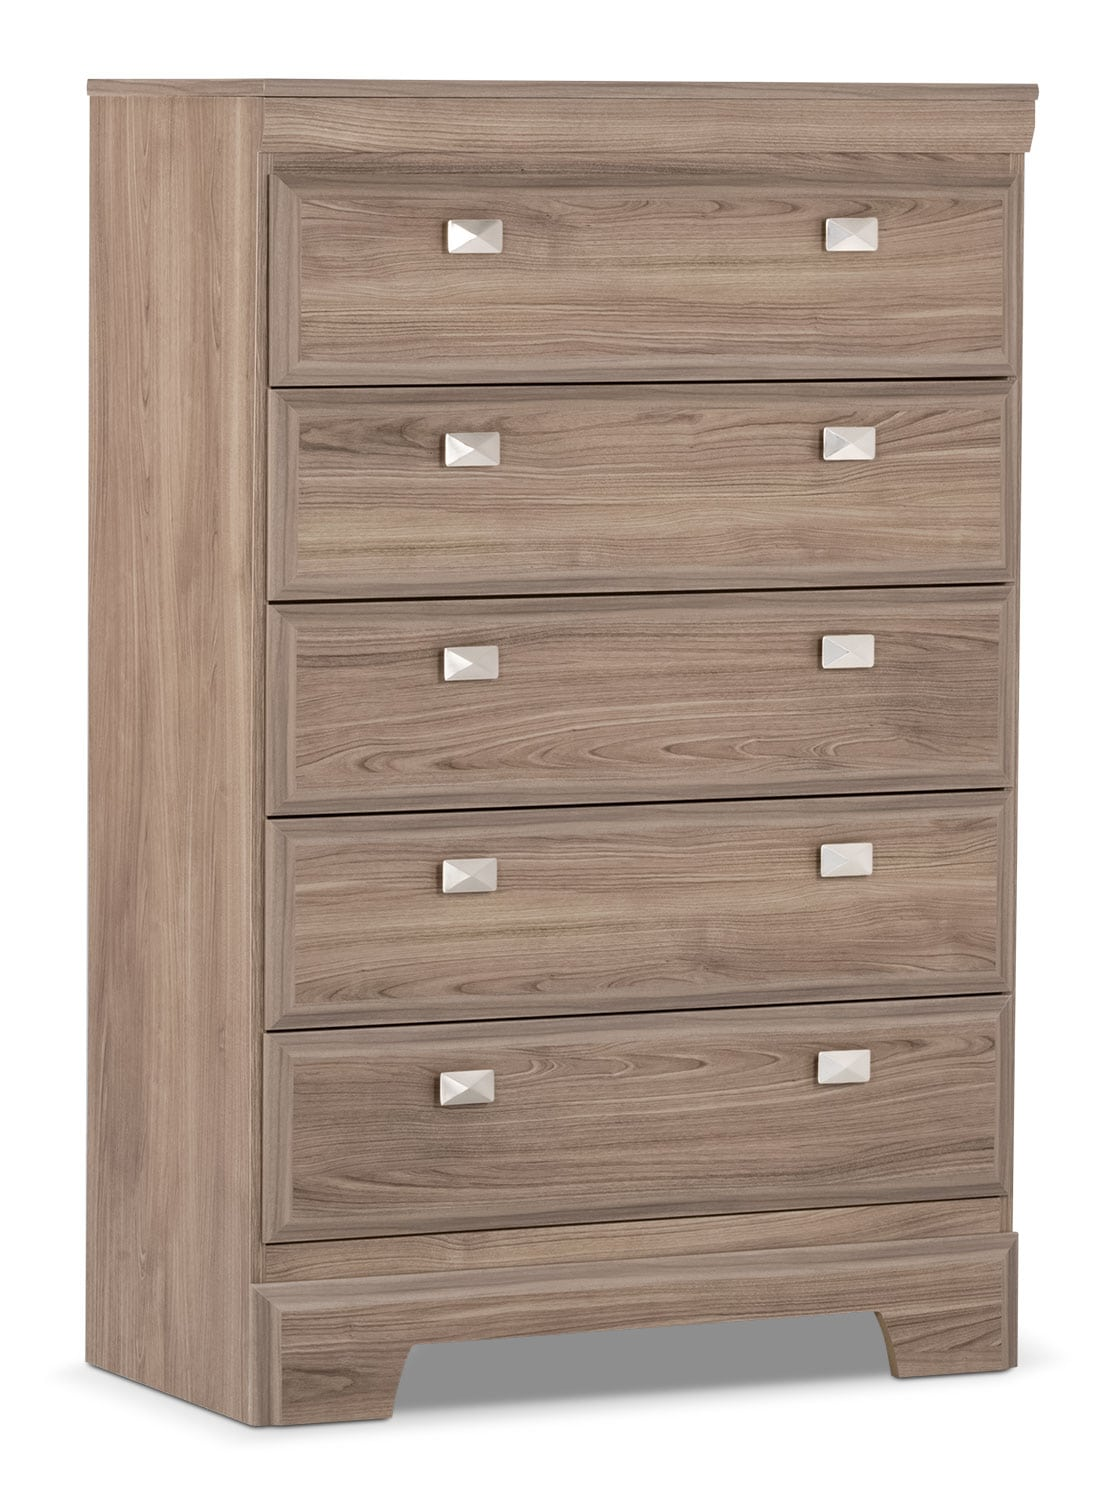 Bedroom Furniture - Yorkdale Light Chest